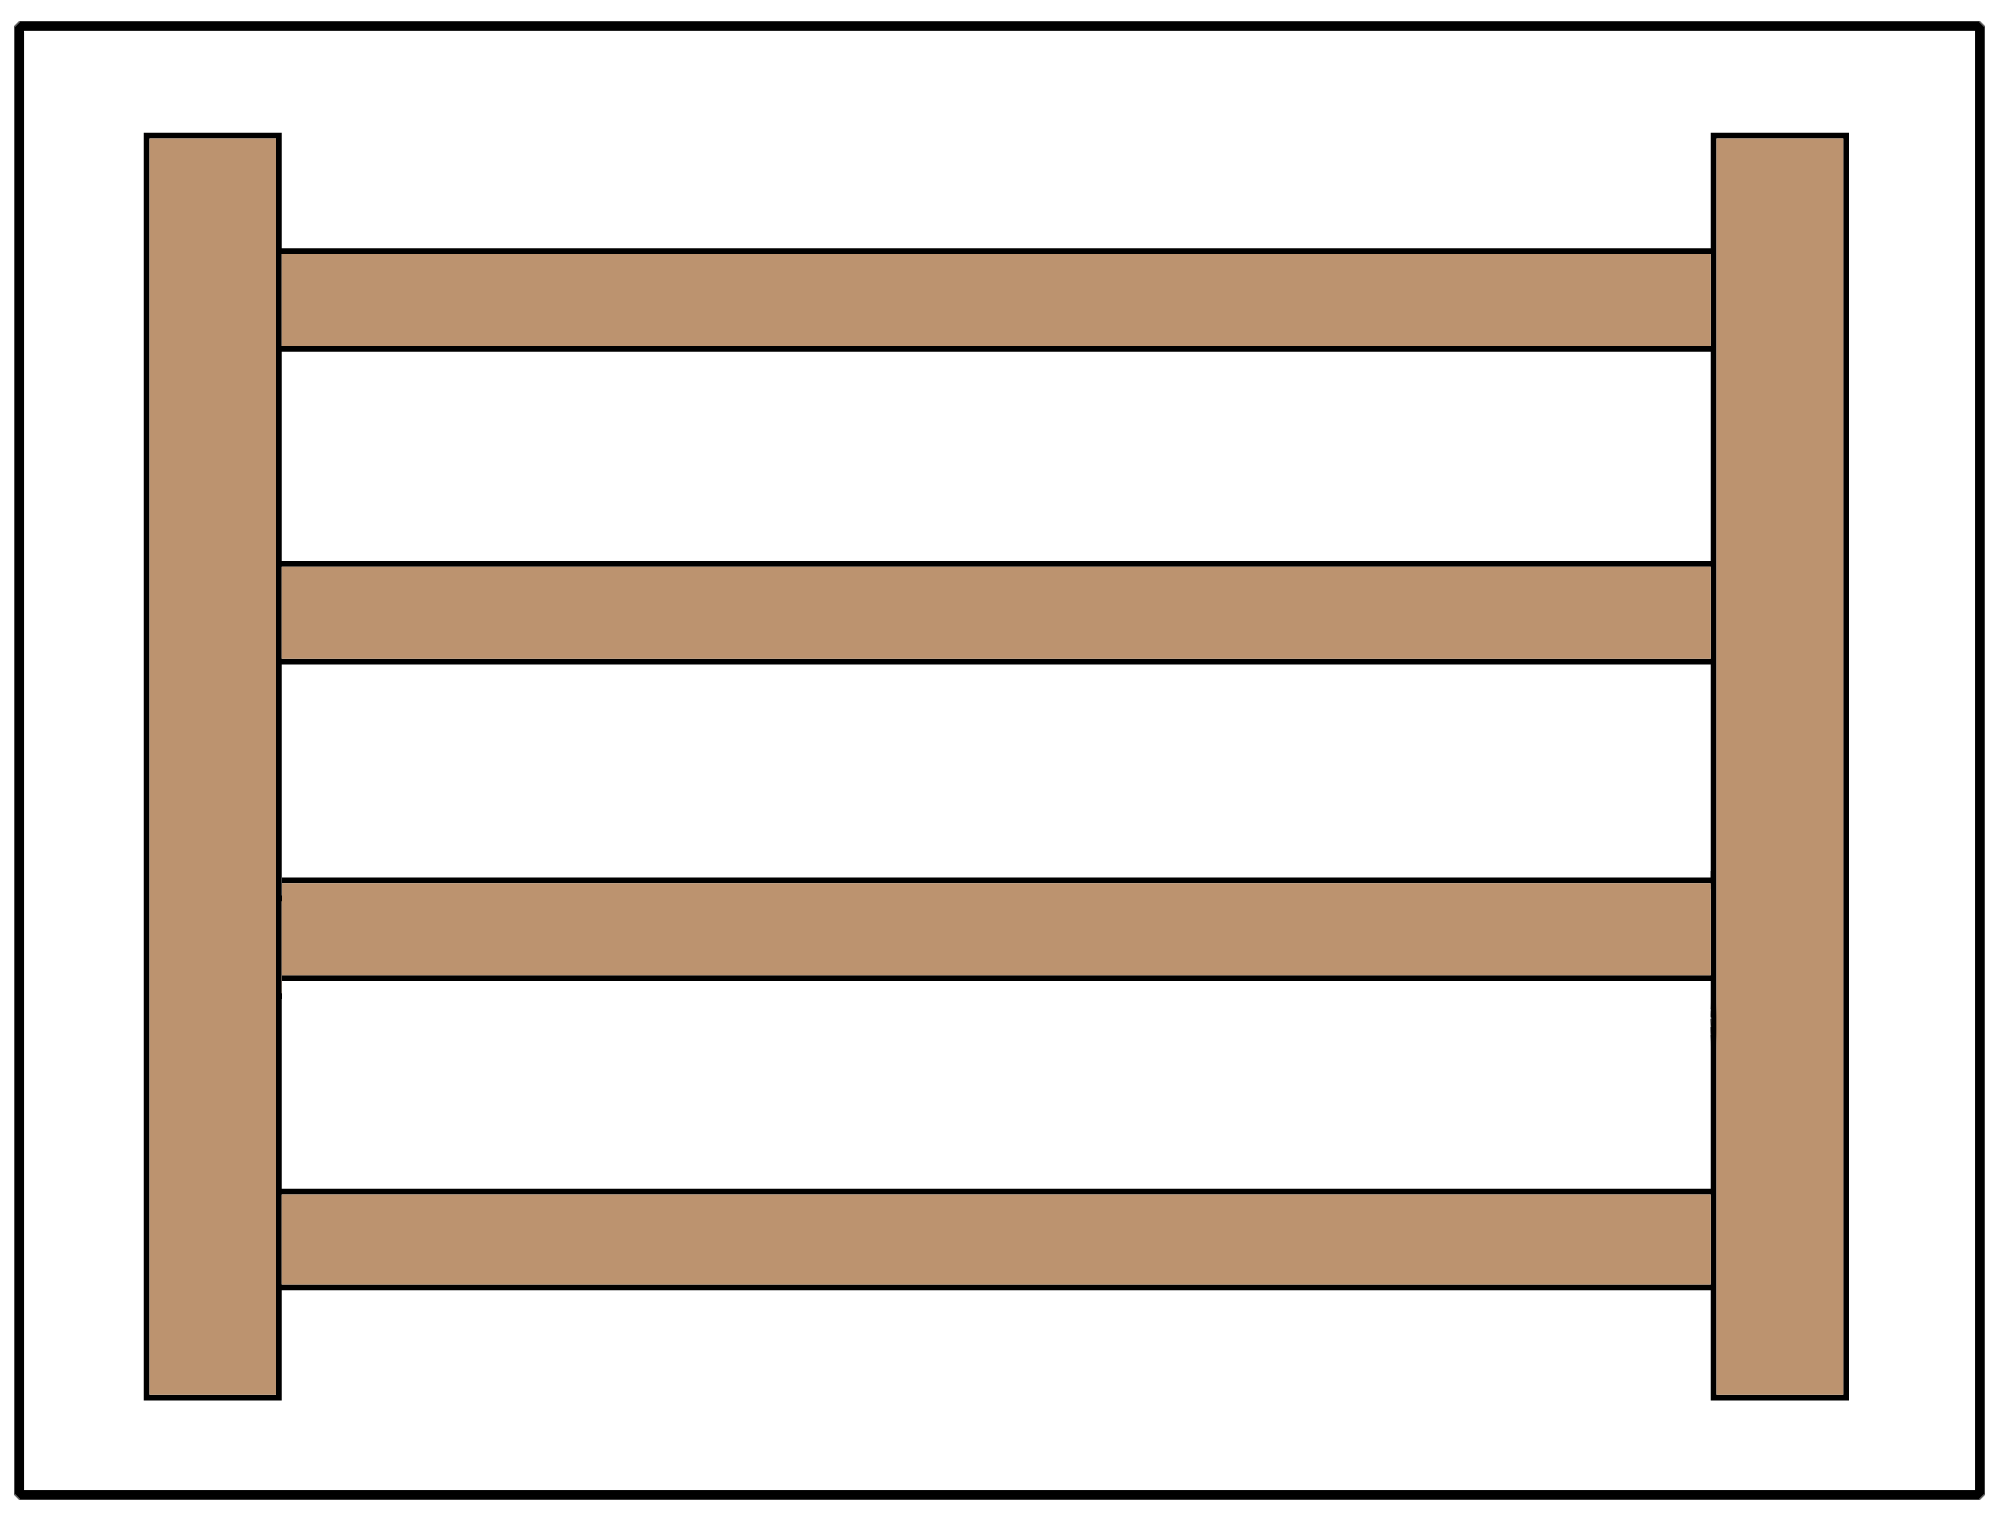 Split rail or estate fence using 4 rails